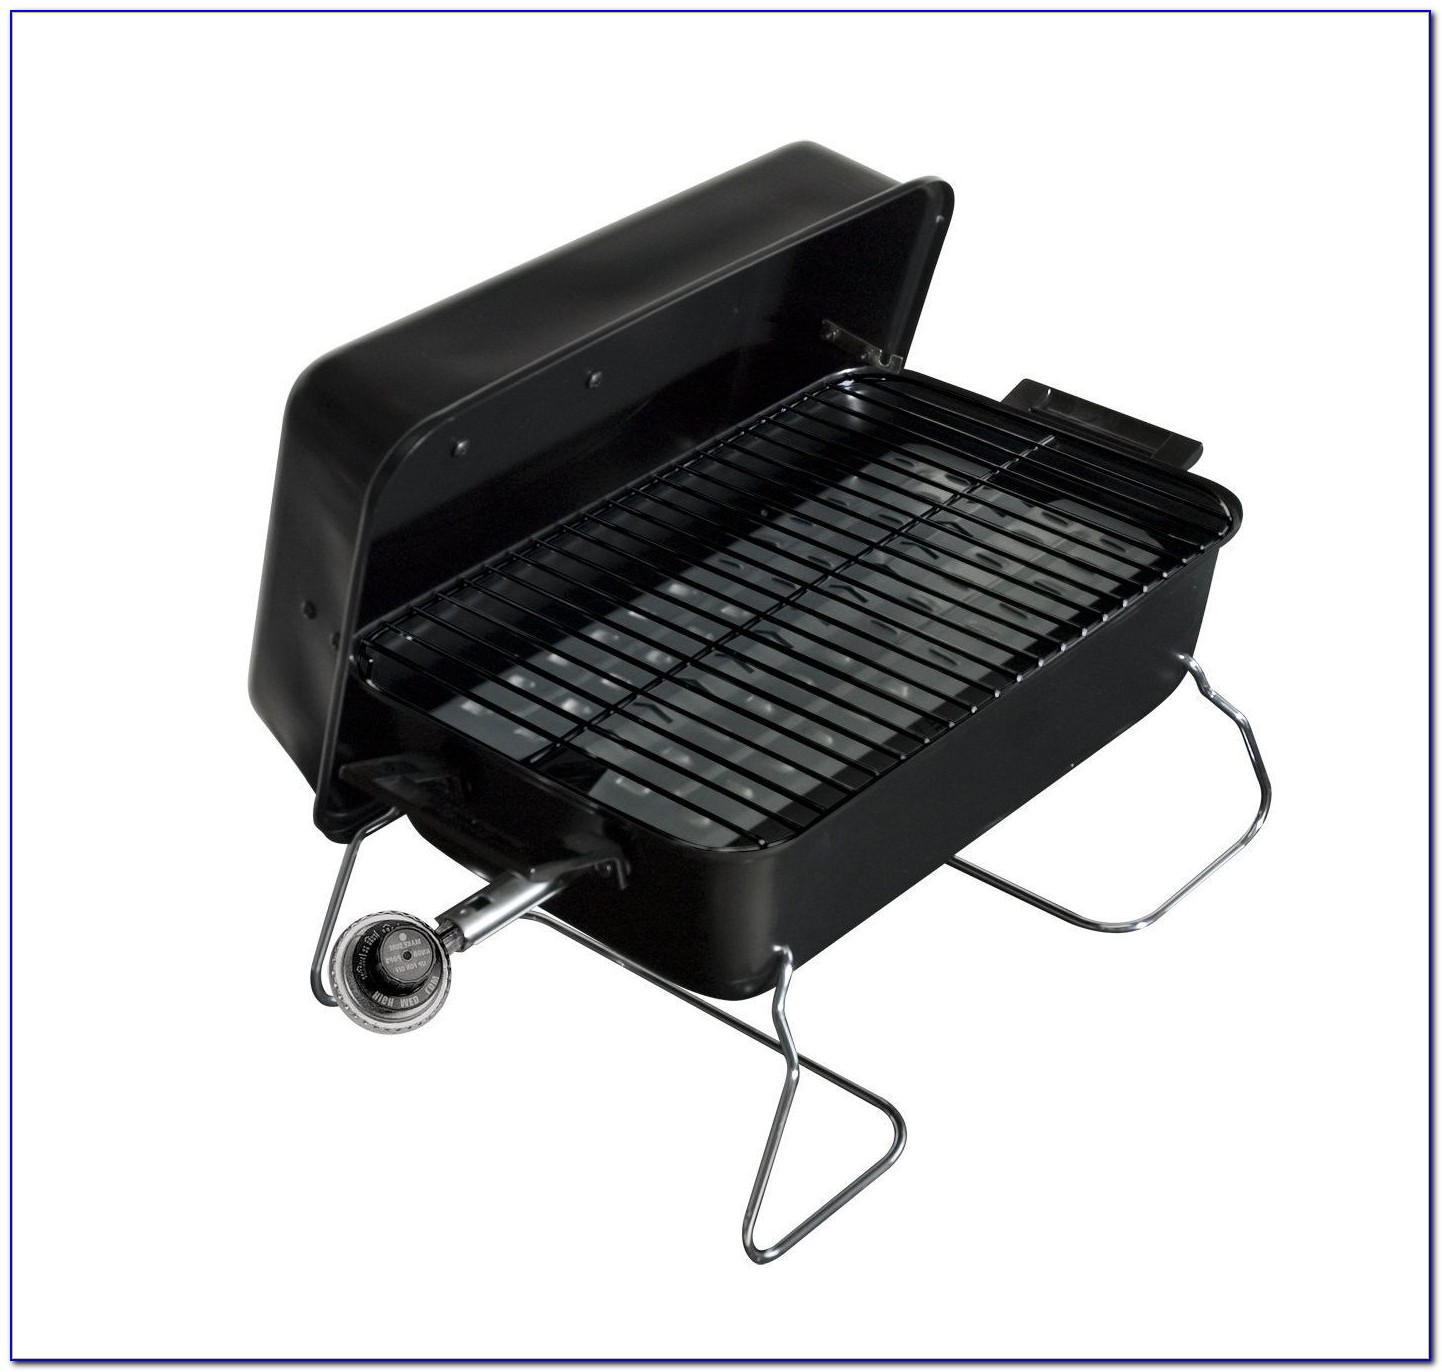 Tabletop Grill Propane Tanks